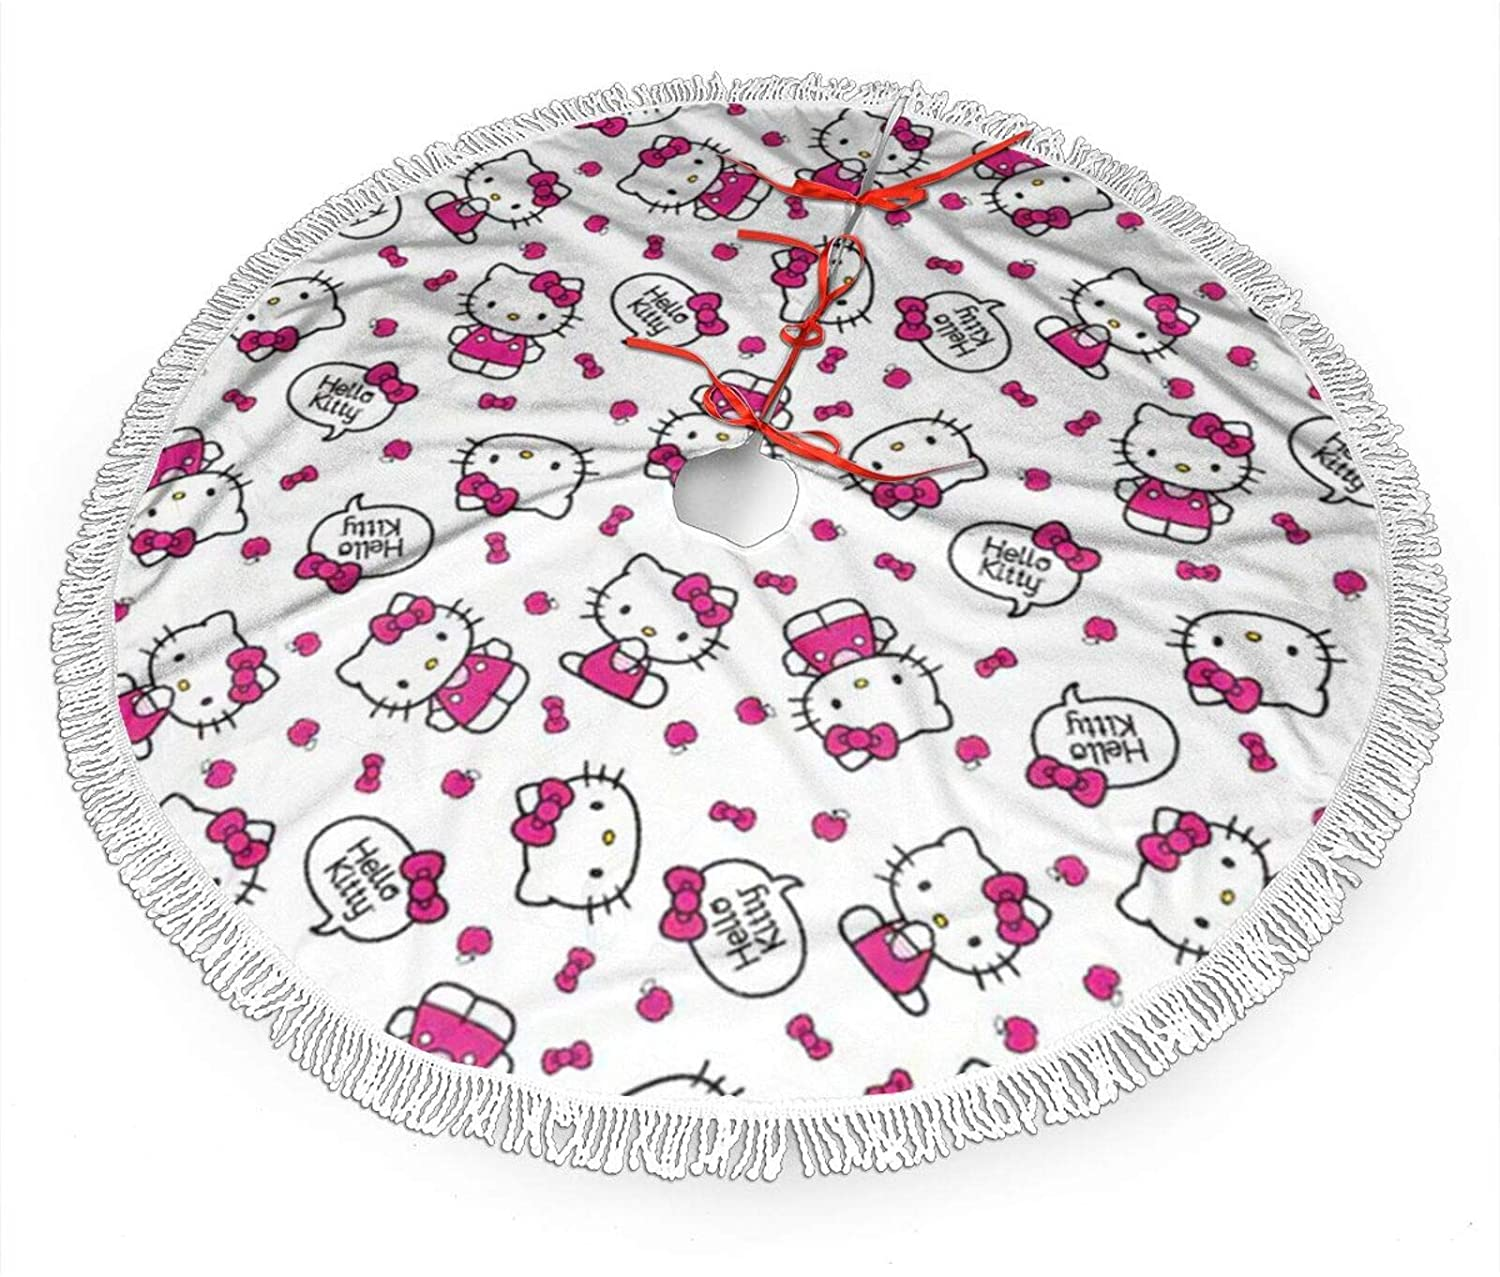 Nyf Hello Kitty Christmas Tree Skirt with Fringe Mat Xmastree Skirt for Party Holiday Decorations 36 Inch